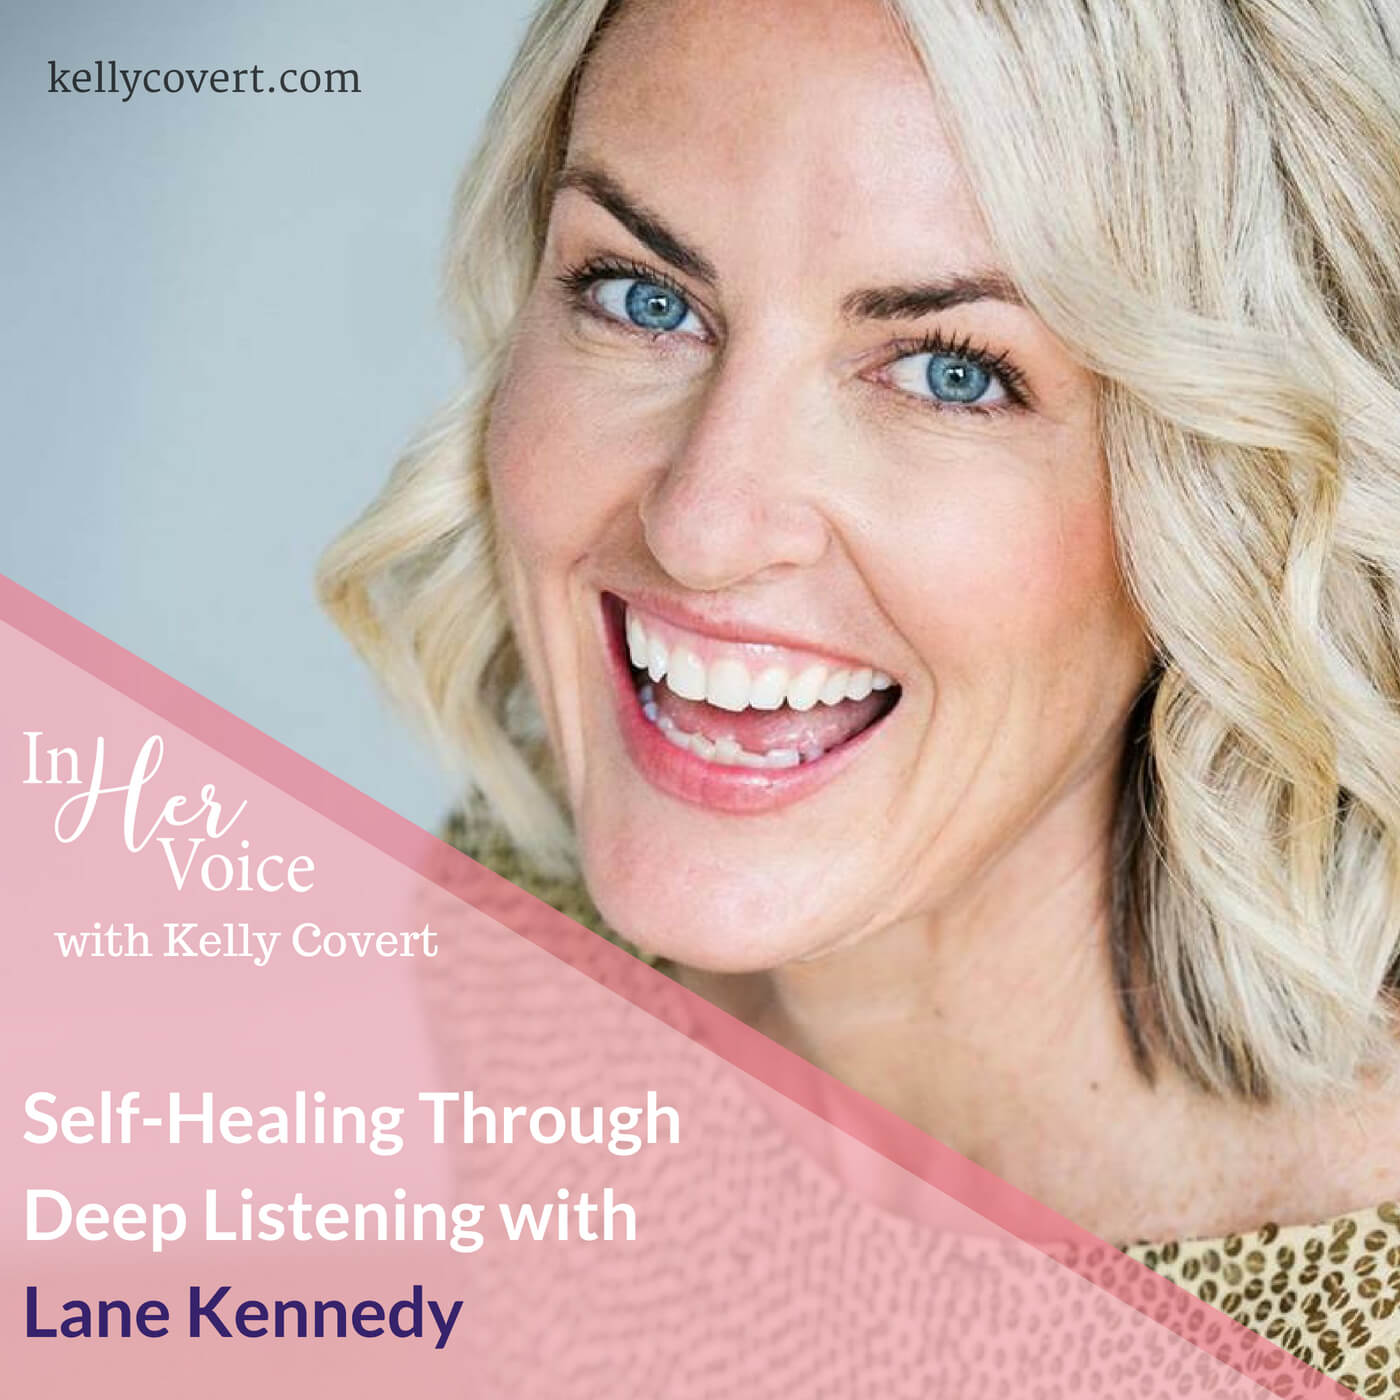 Self-Healing Through Deep Listening with Lane Kennedy